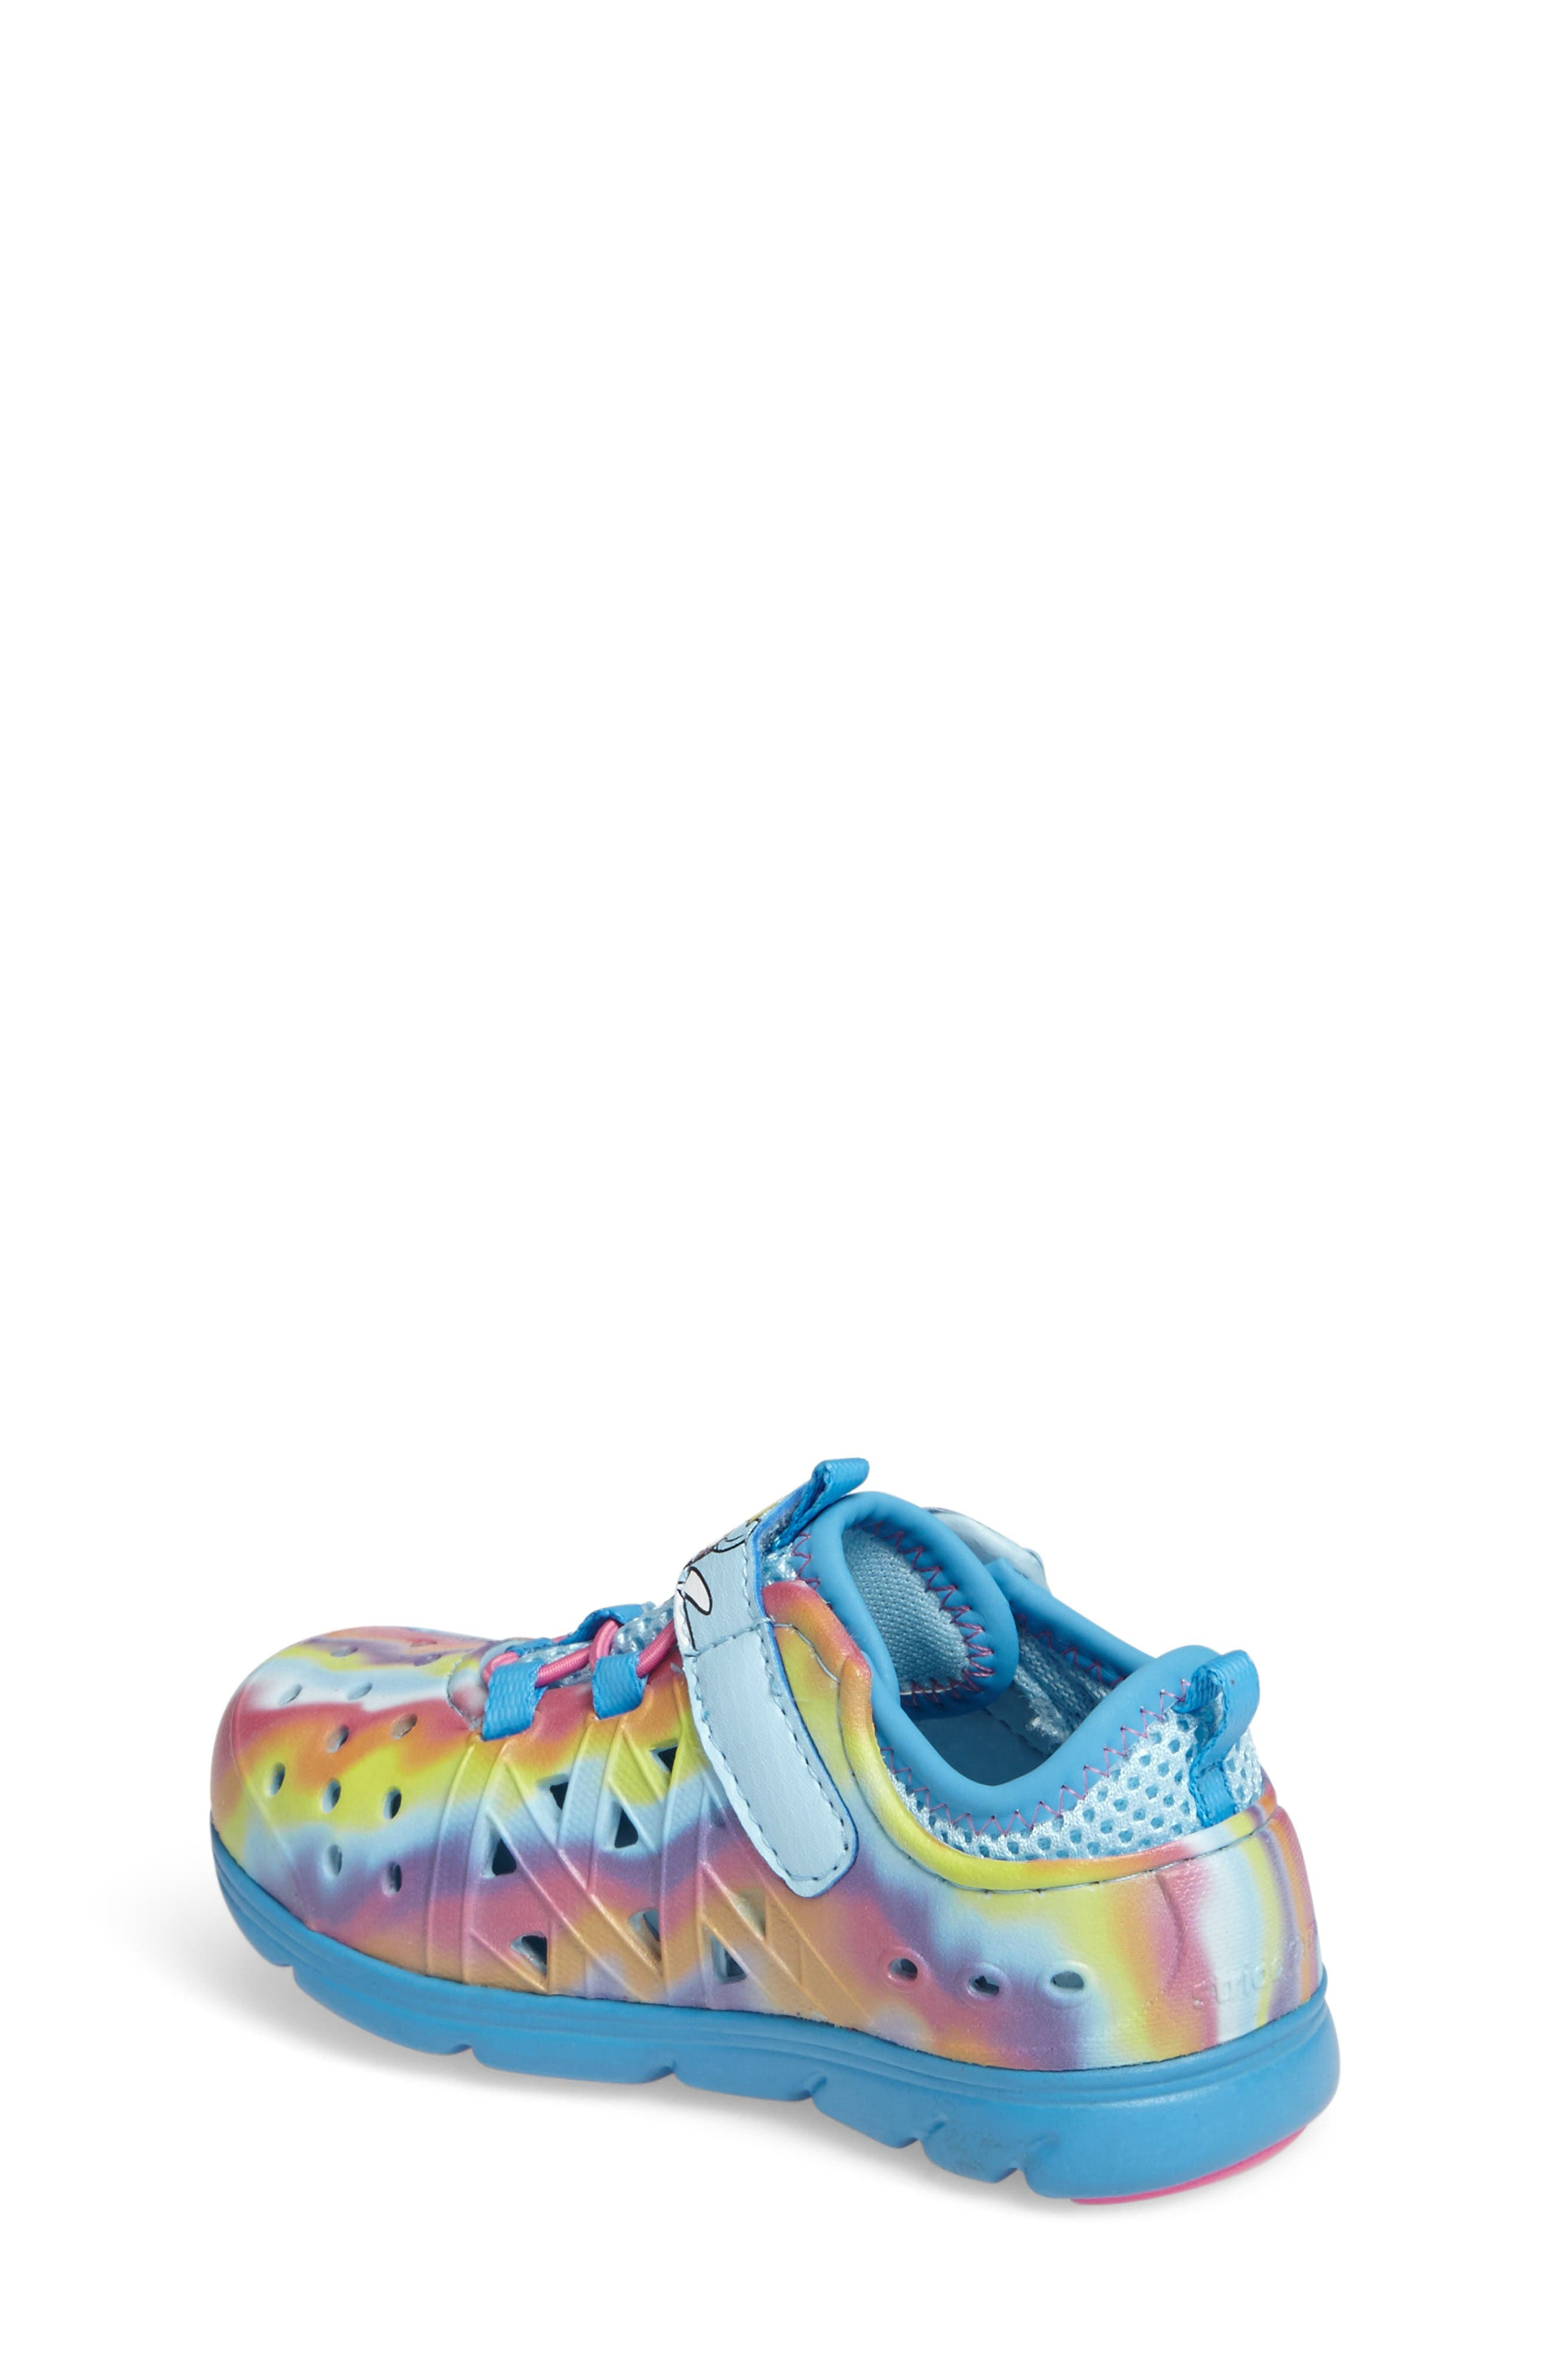 Made2Play<sup>®</sup> My Little Pony<sup>™</sup> Phibian Sneaker,                             Alternate thumbnail 2, color,                             Rainbow Turquoise